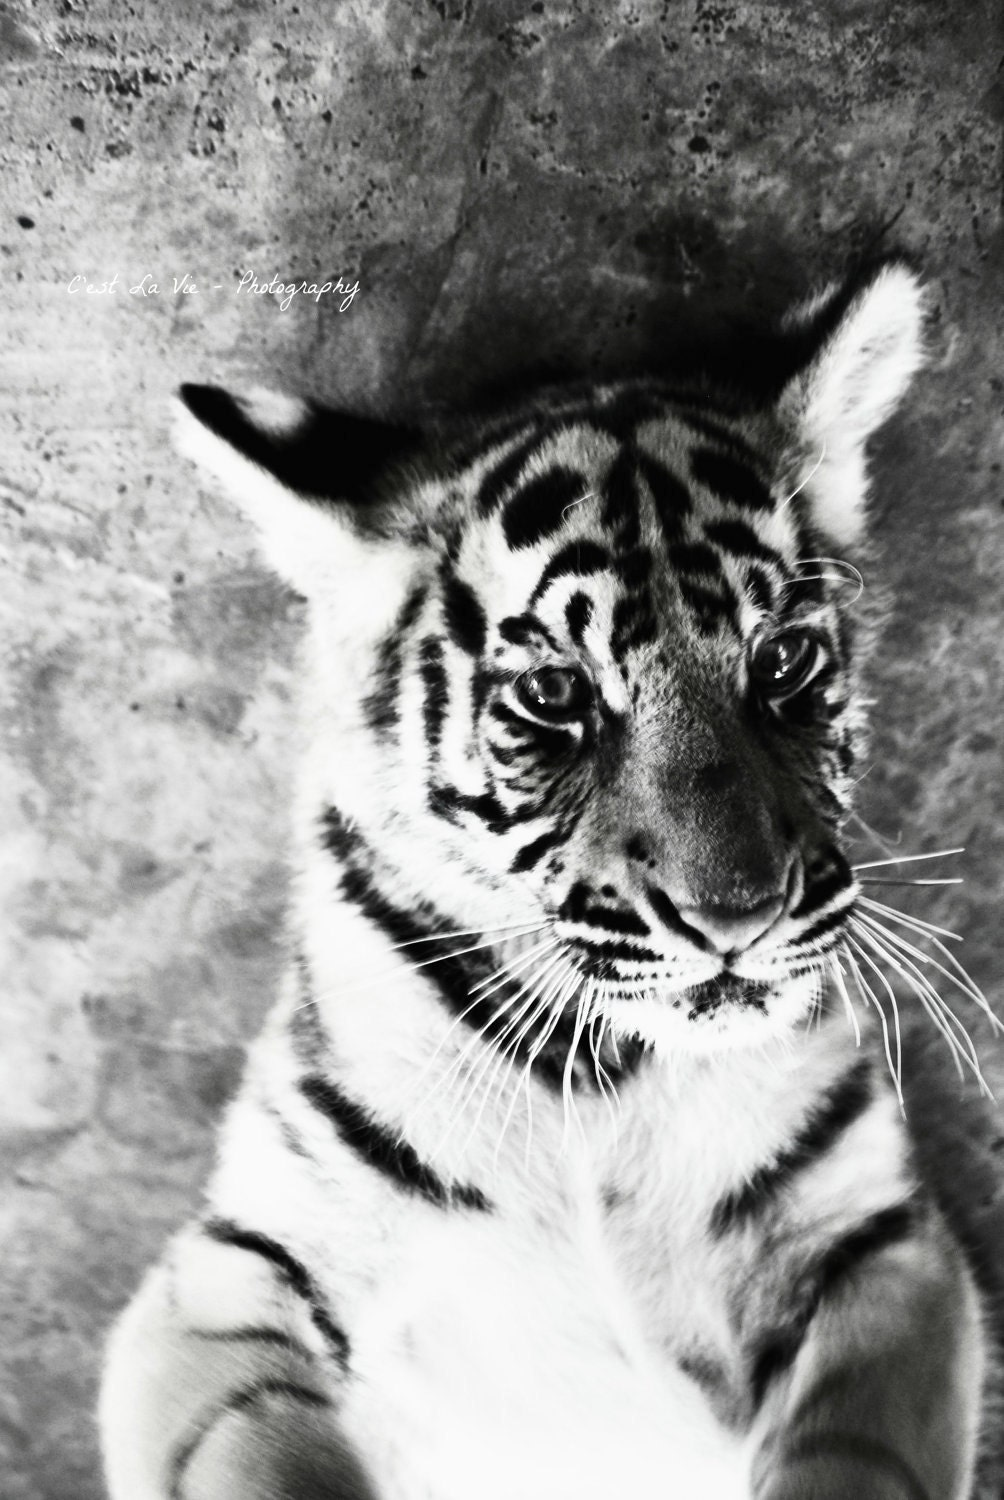 tiger black and white Tiger Eyes Black And White Tiger Eyes Black And White